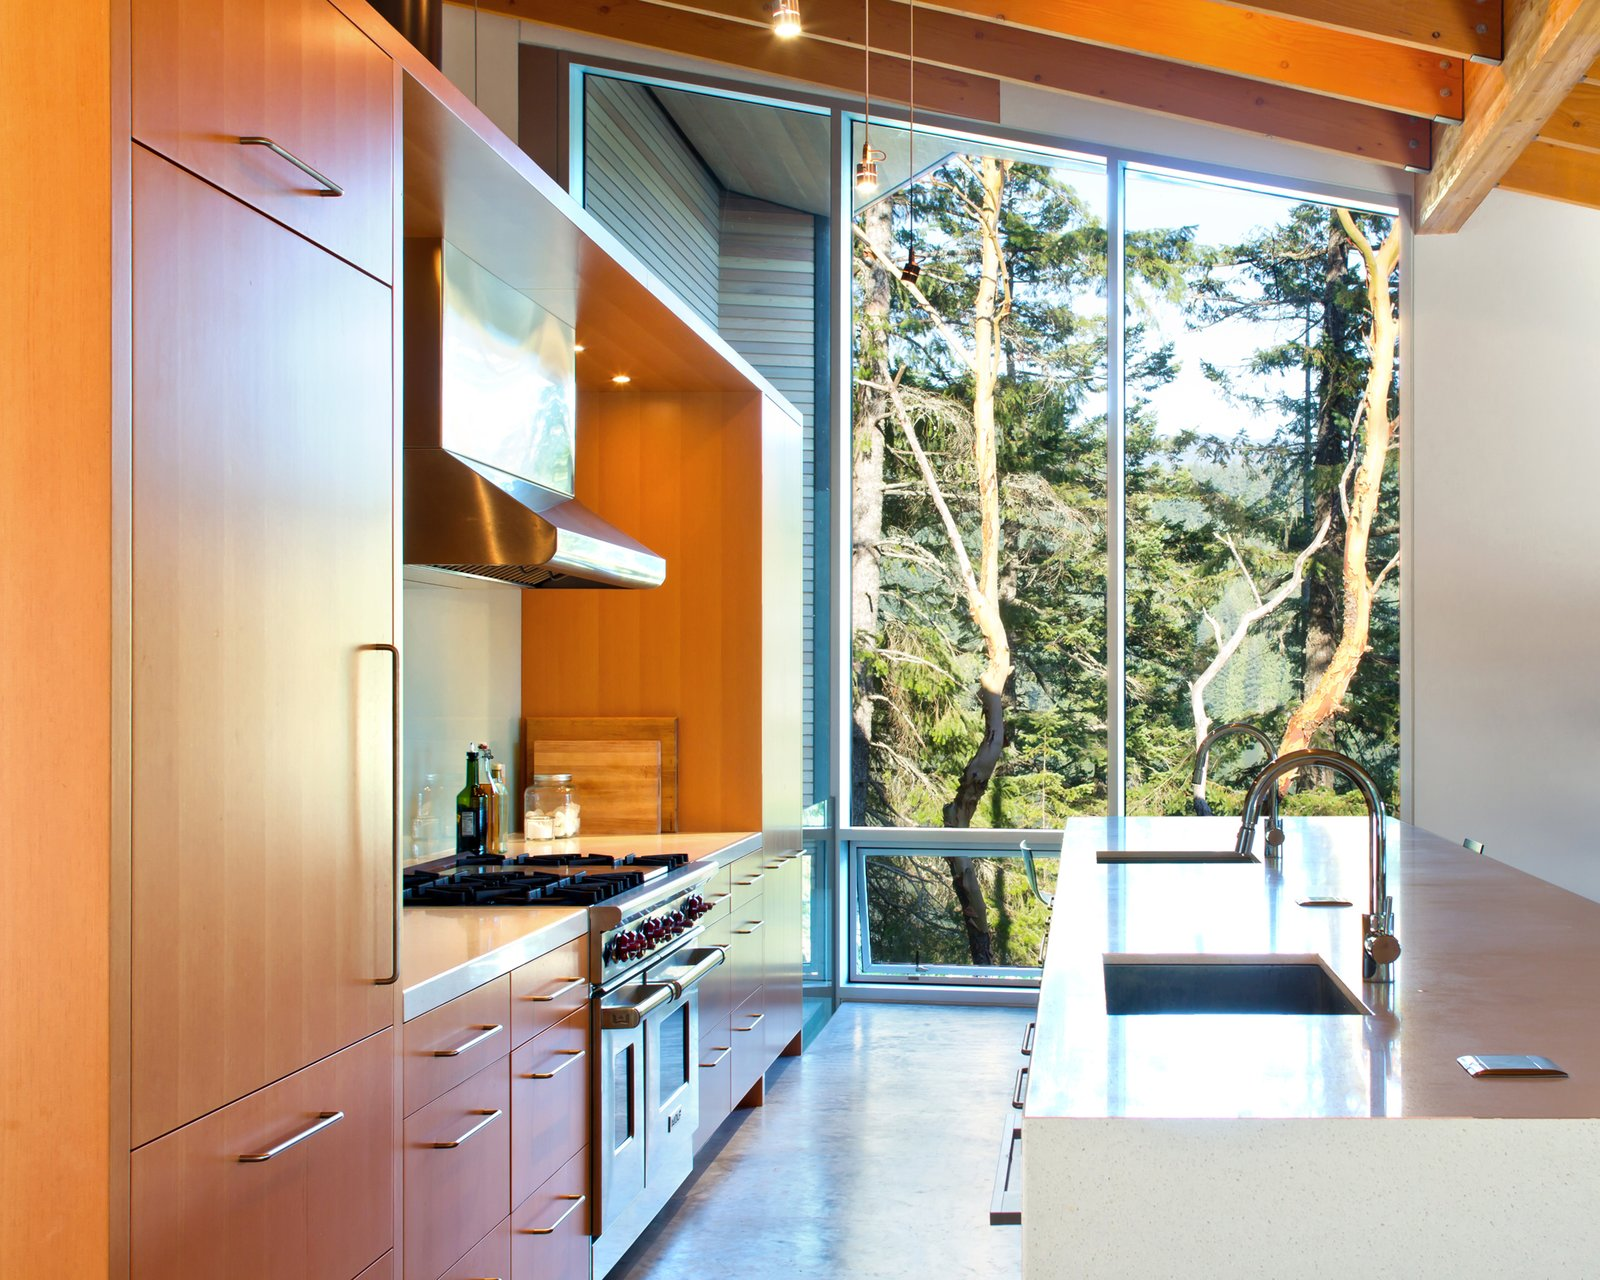 Kitchen and Wood Cabinet Light streams in through the kitchen from massive, floor-to-ceiling windows that offer peaceful views of the outside foliage.  Best Photos from Gambier Retreat